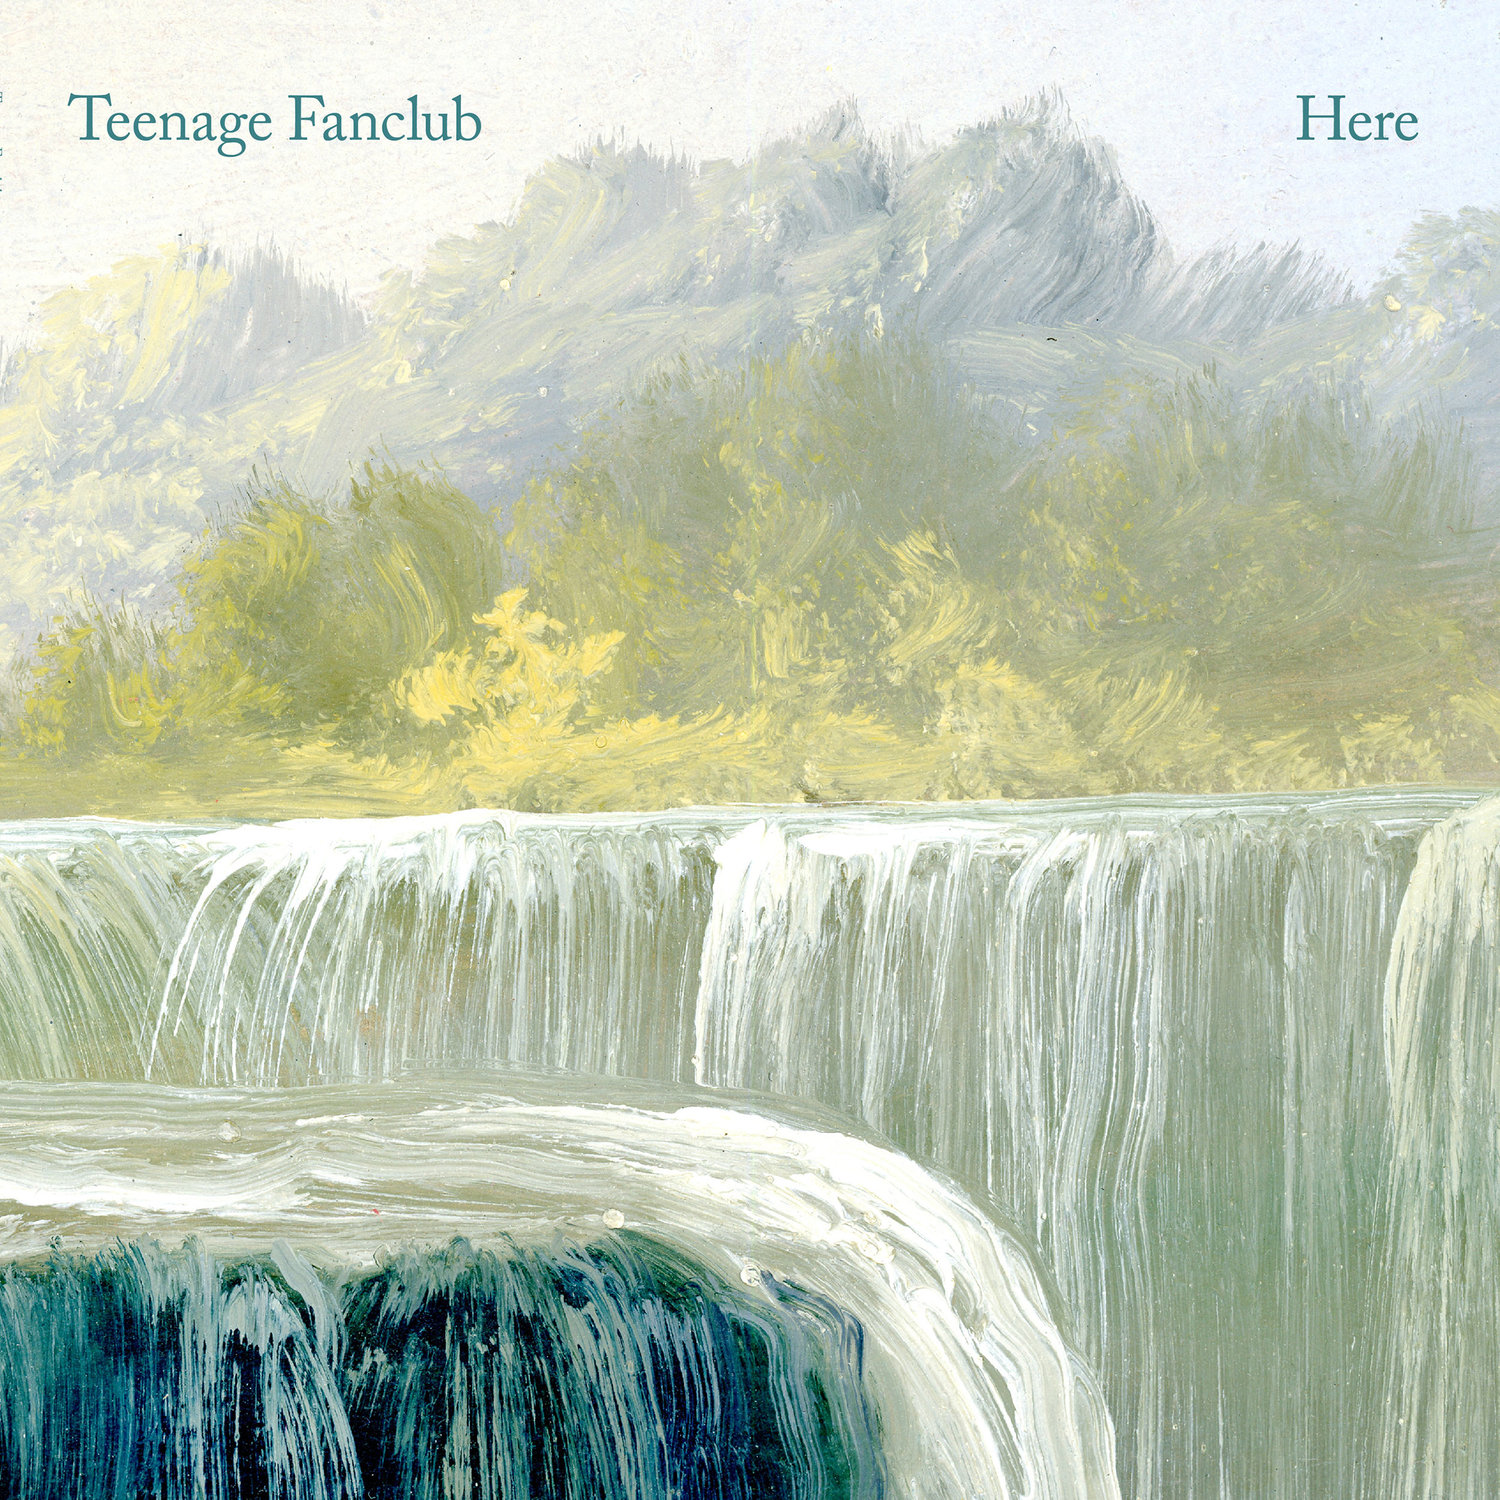 Teenage_Fanclub_Here__high_